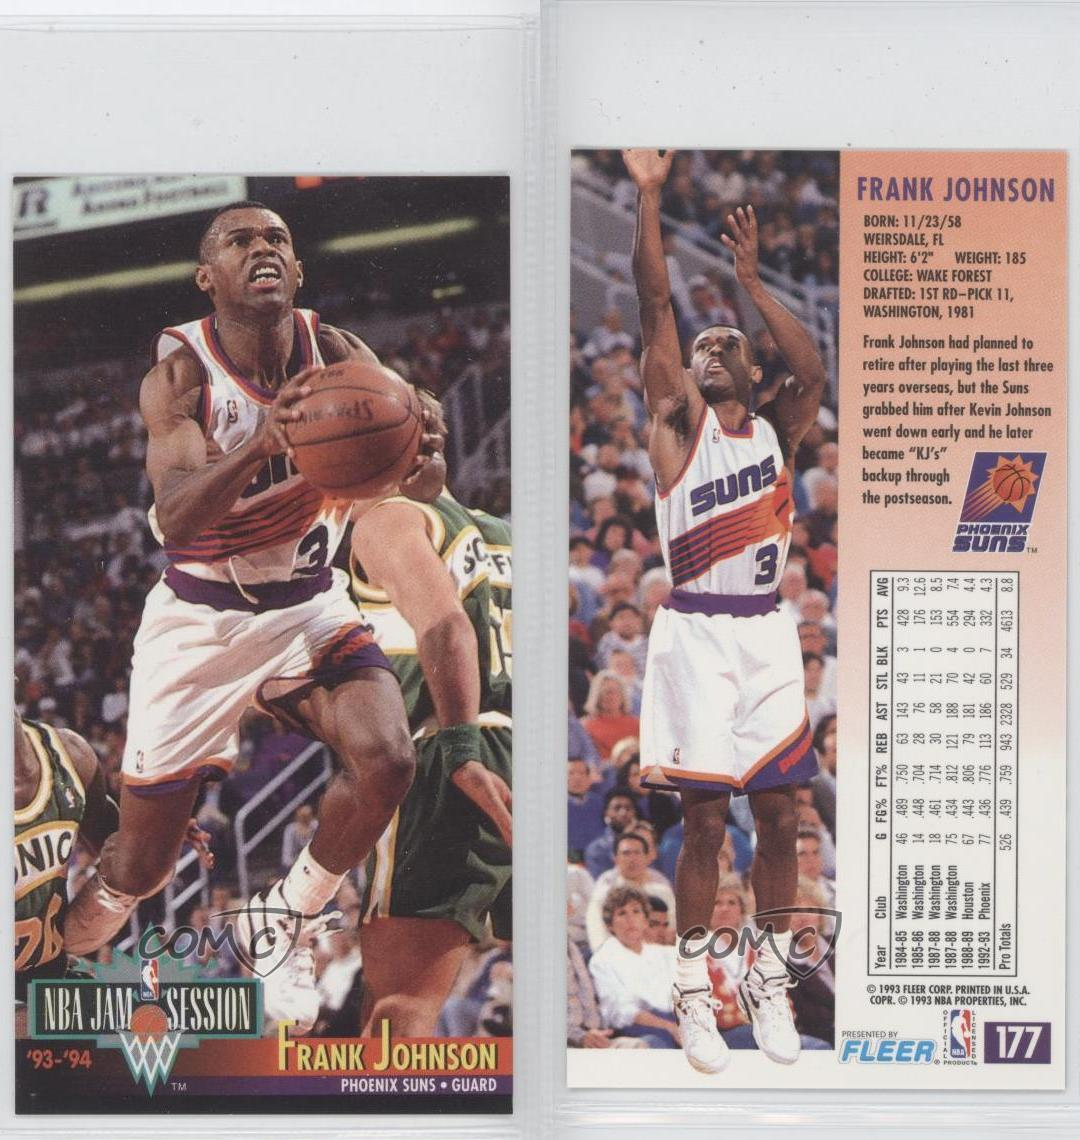 1993-94 NBA Jam Session #177 Frank Johnson Phoenix Suns